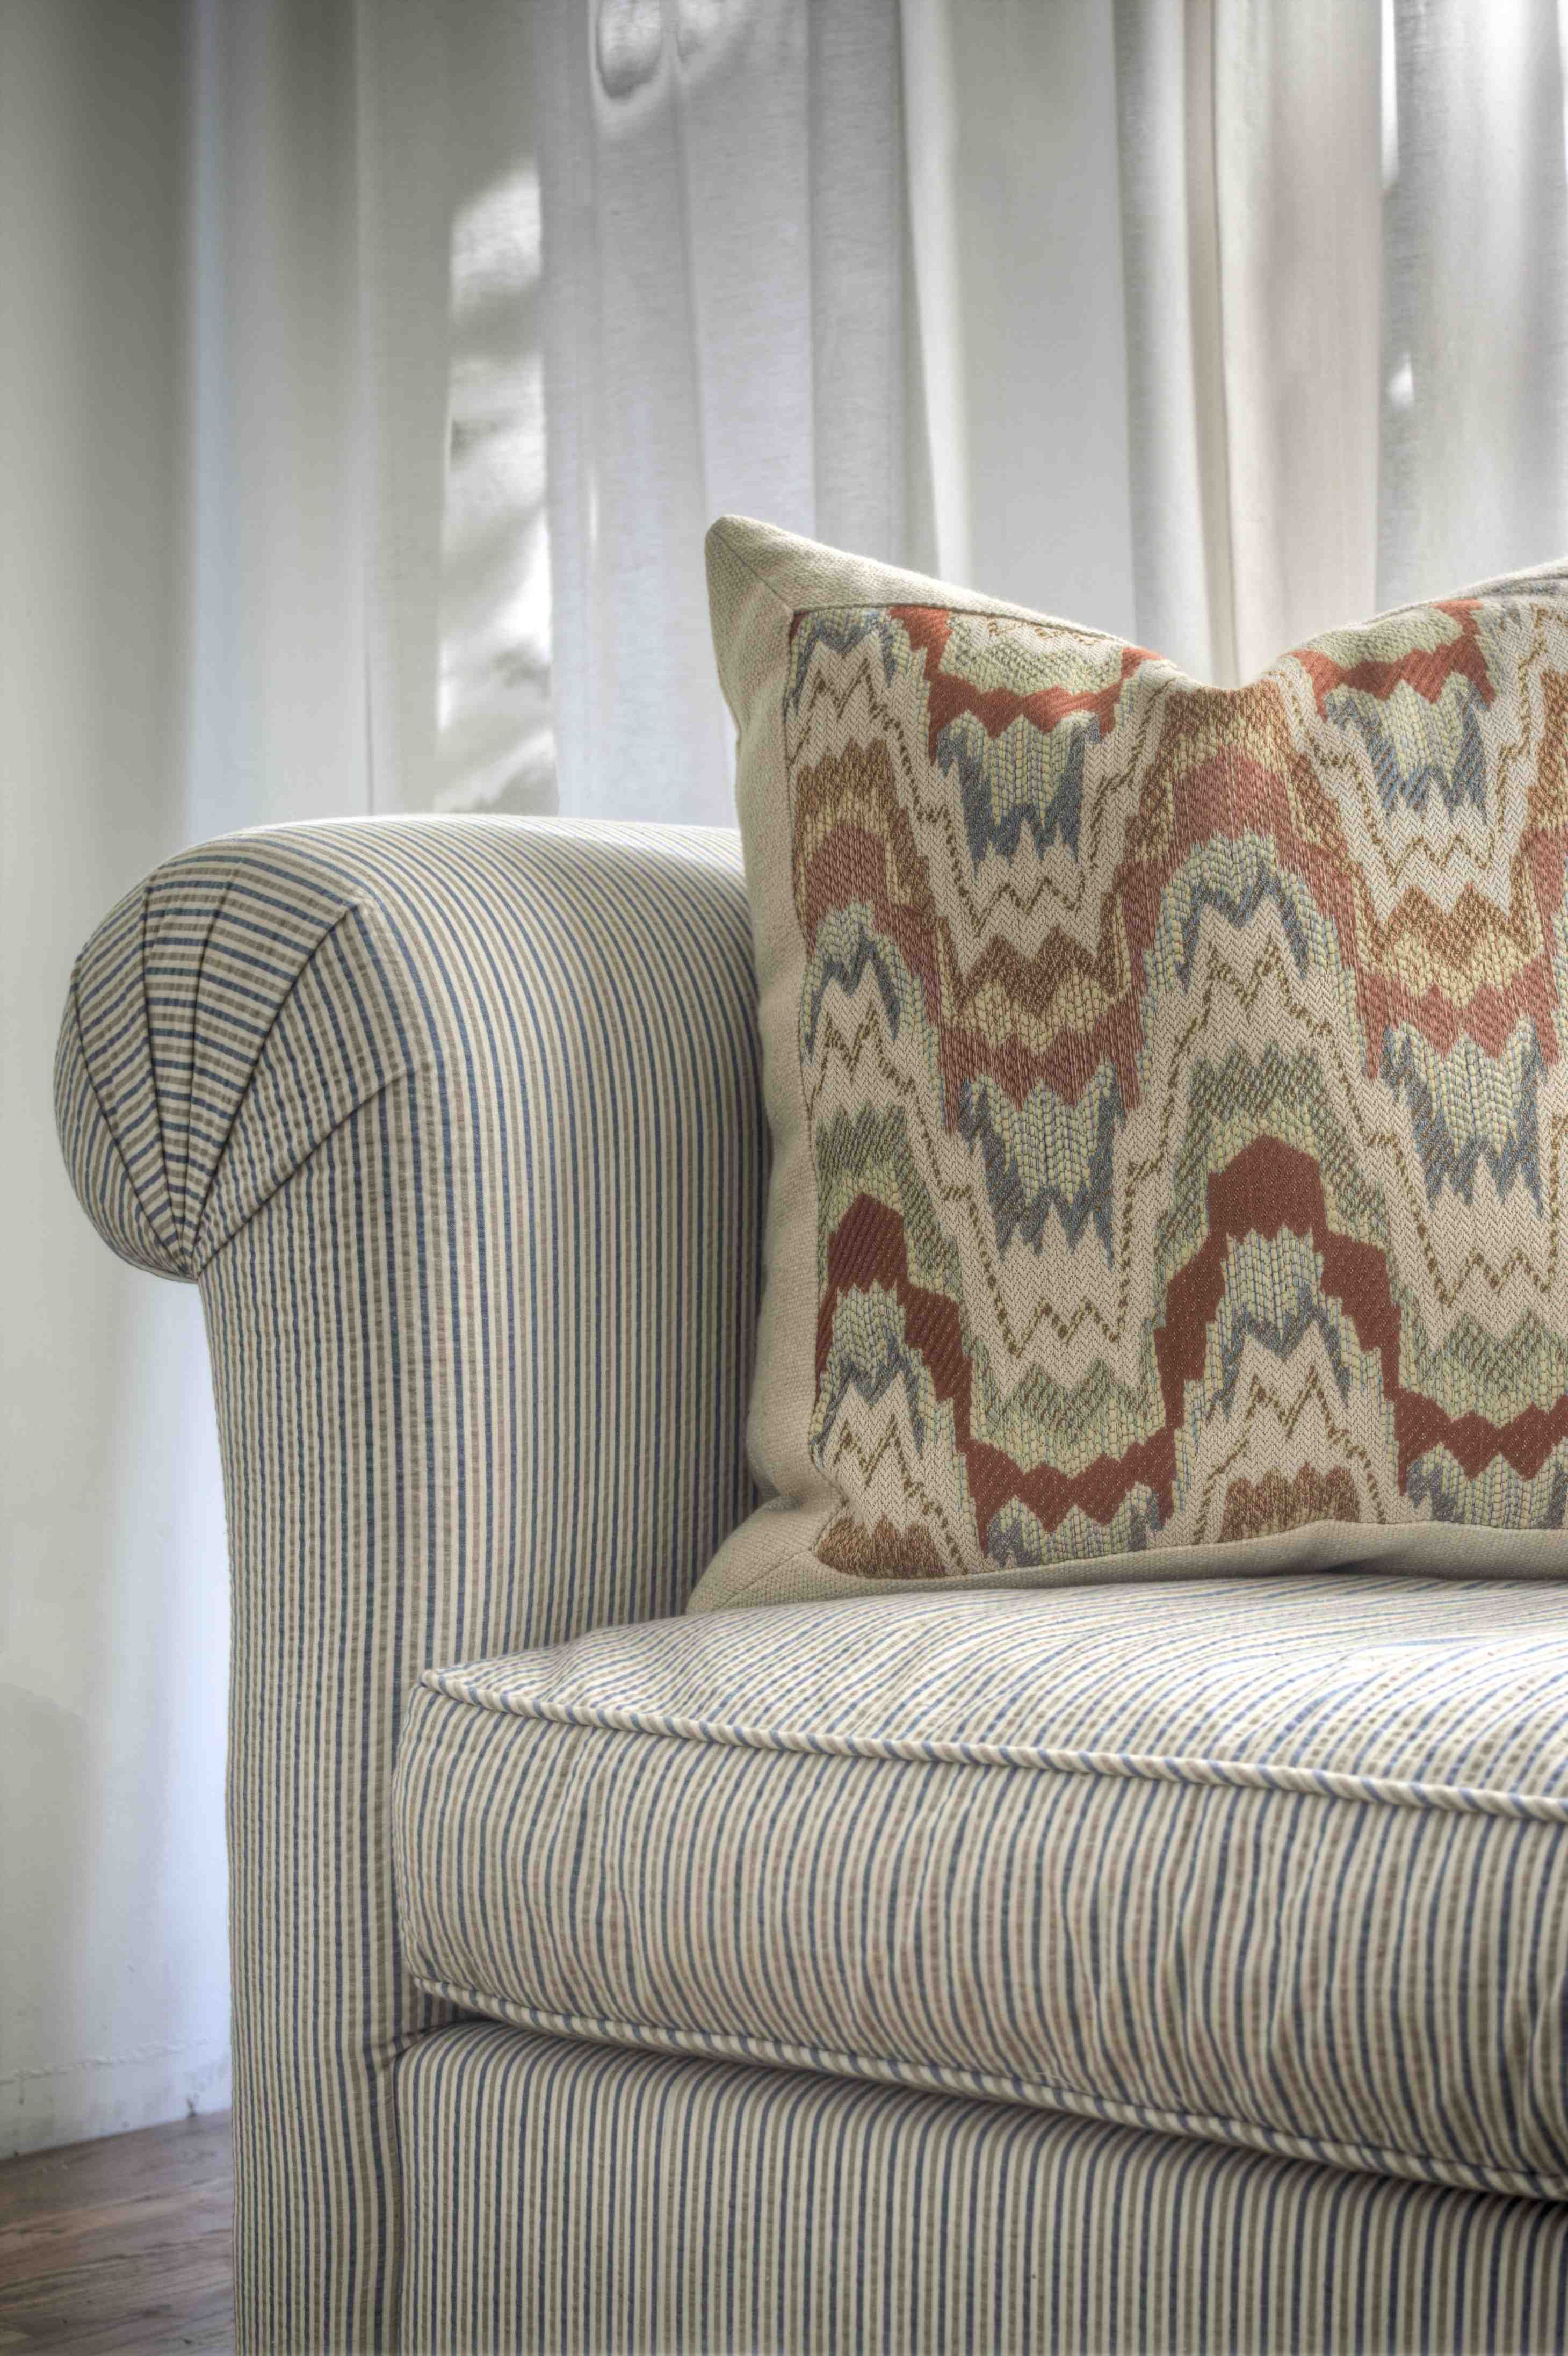 bow unbeknown and wins for the pillows beauty a prize blog ddc missoni img pillow dezignlicious takes at